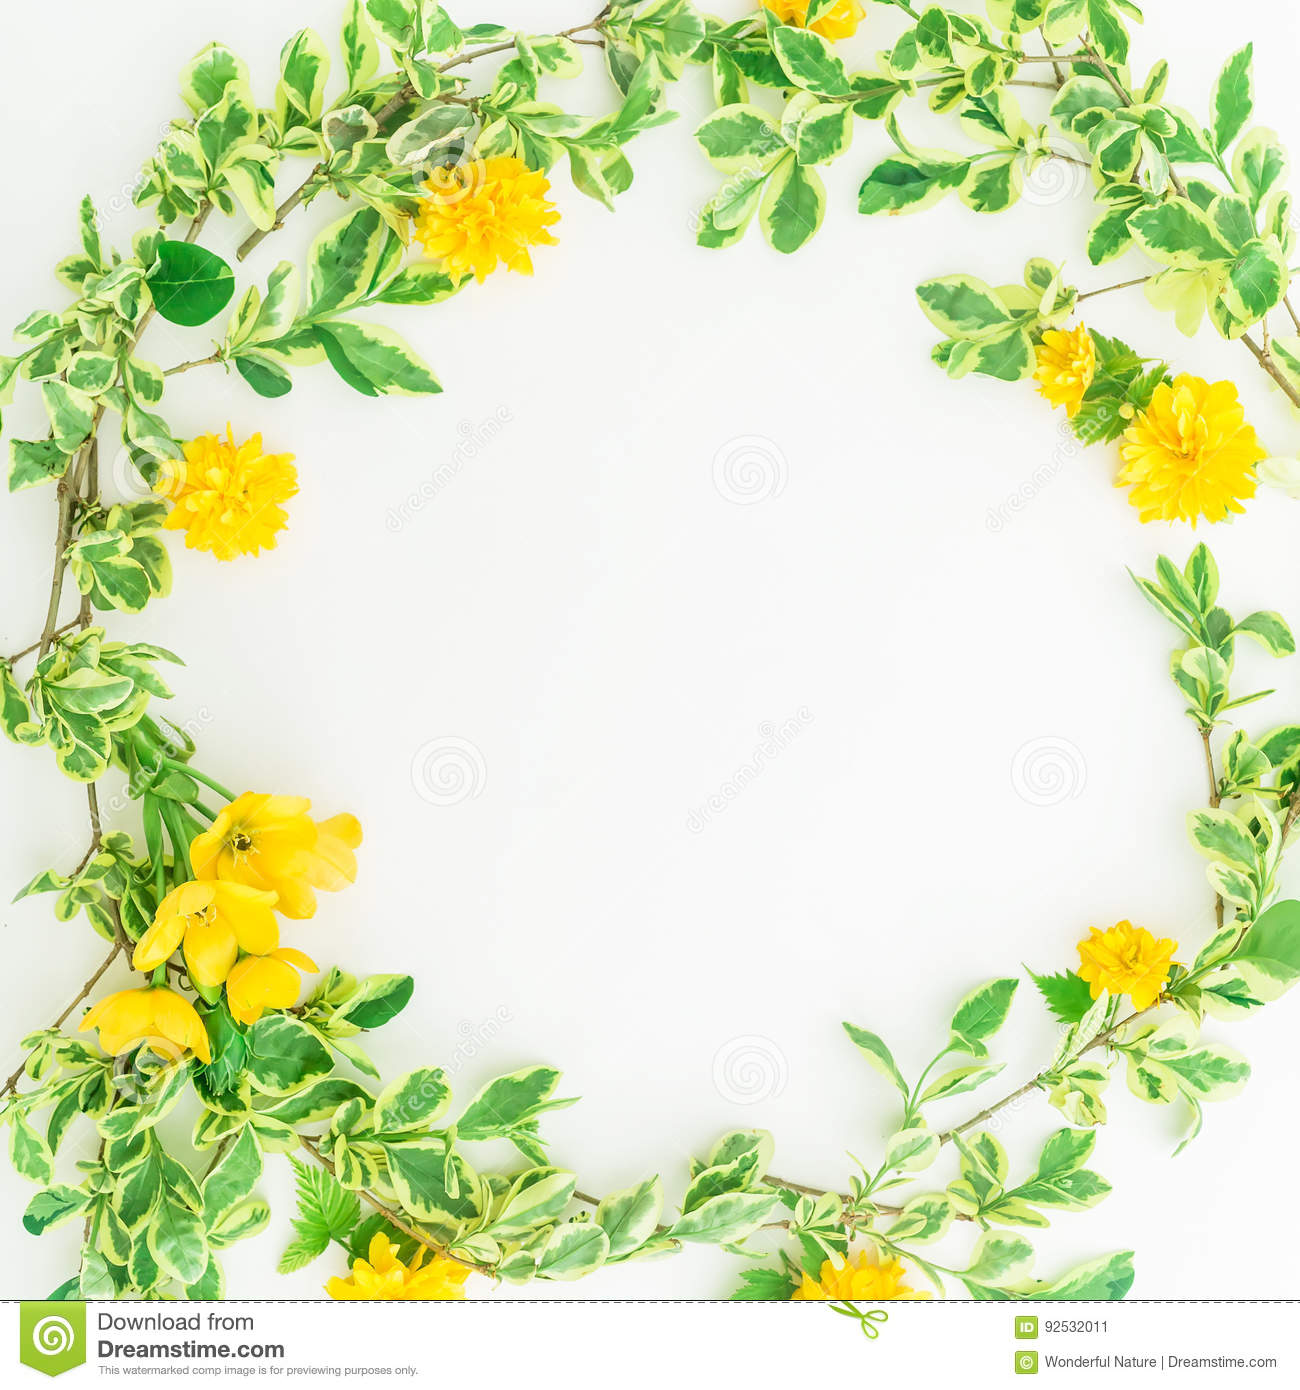 Floral Round Frame Made Of Branches With Leaves And Yellow Flowers